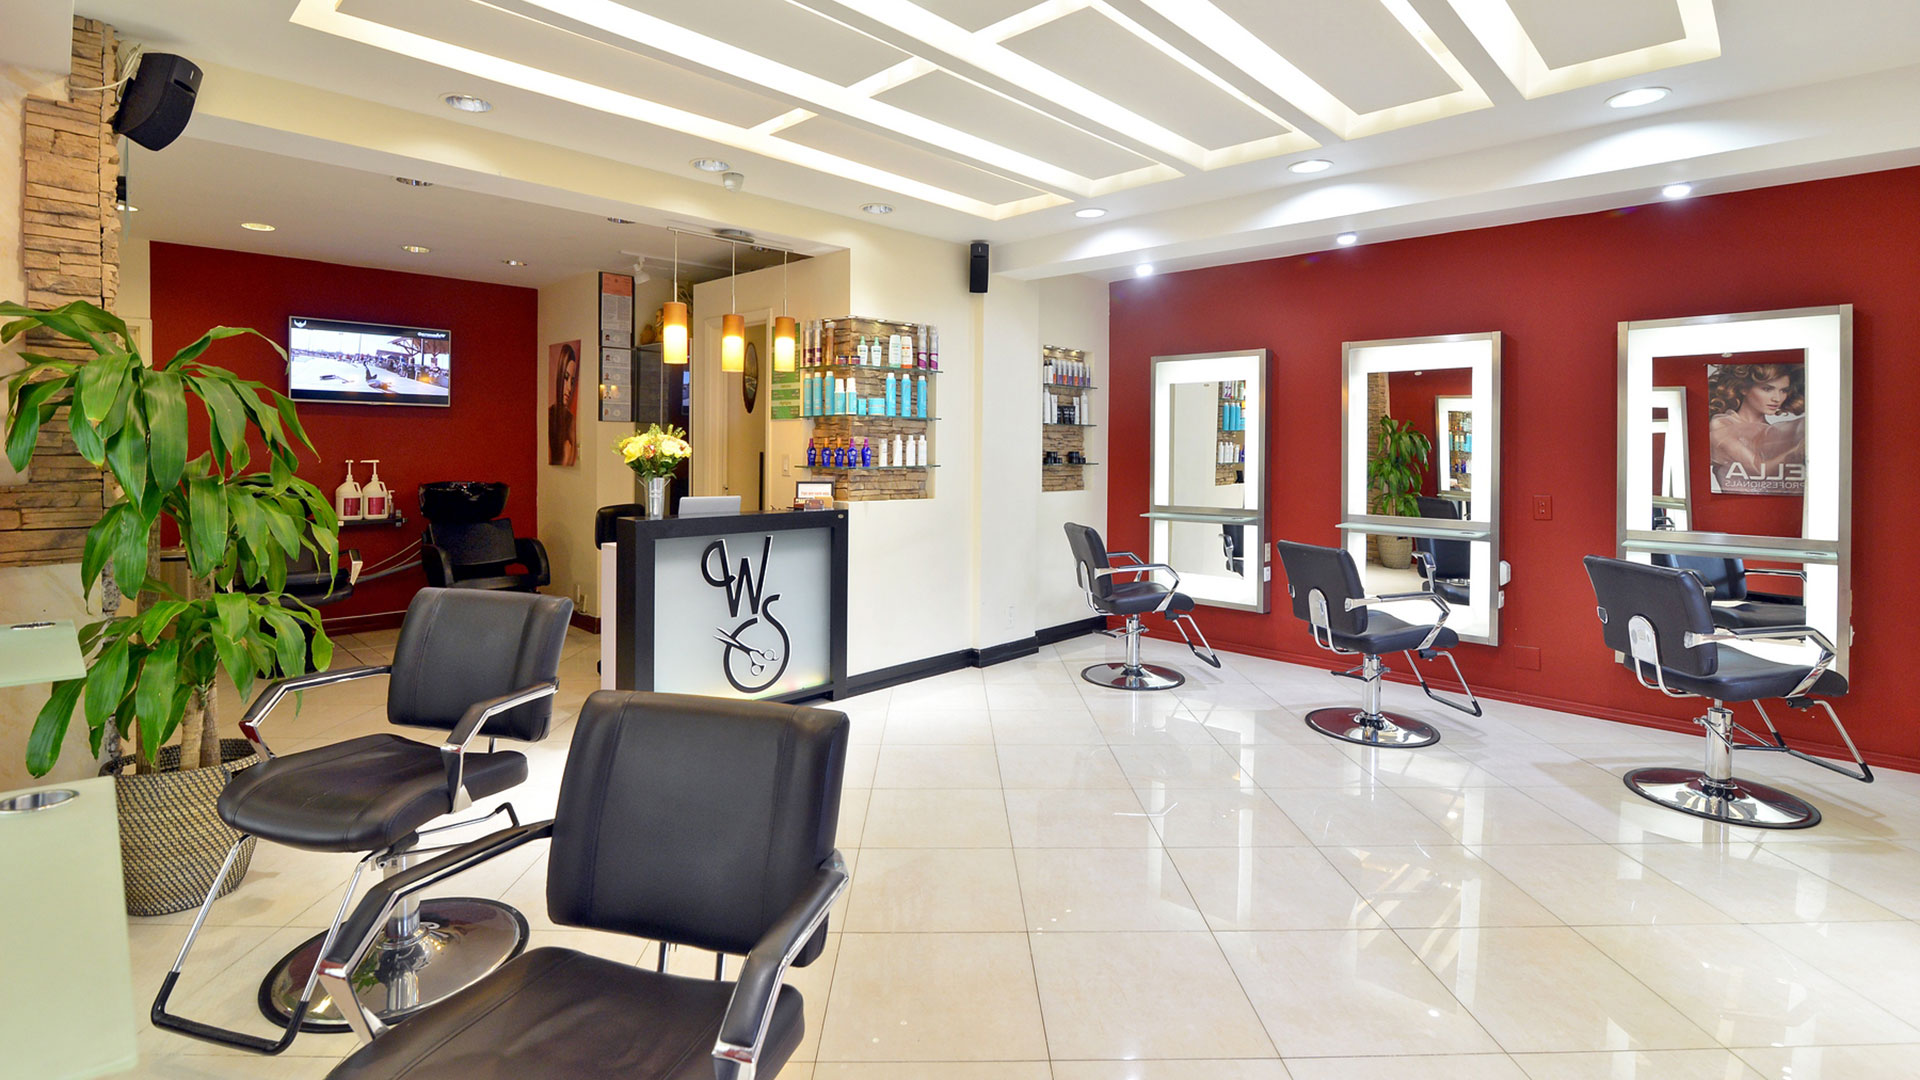 Washington square hairstyling full service beauty salon for A creative touch beauty salon